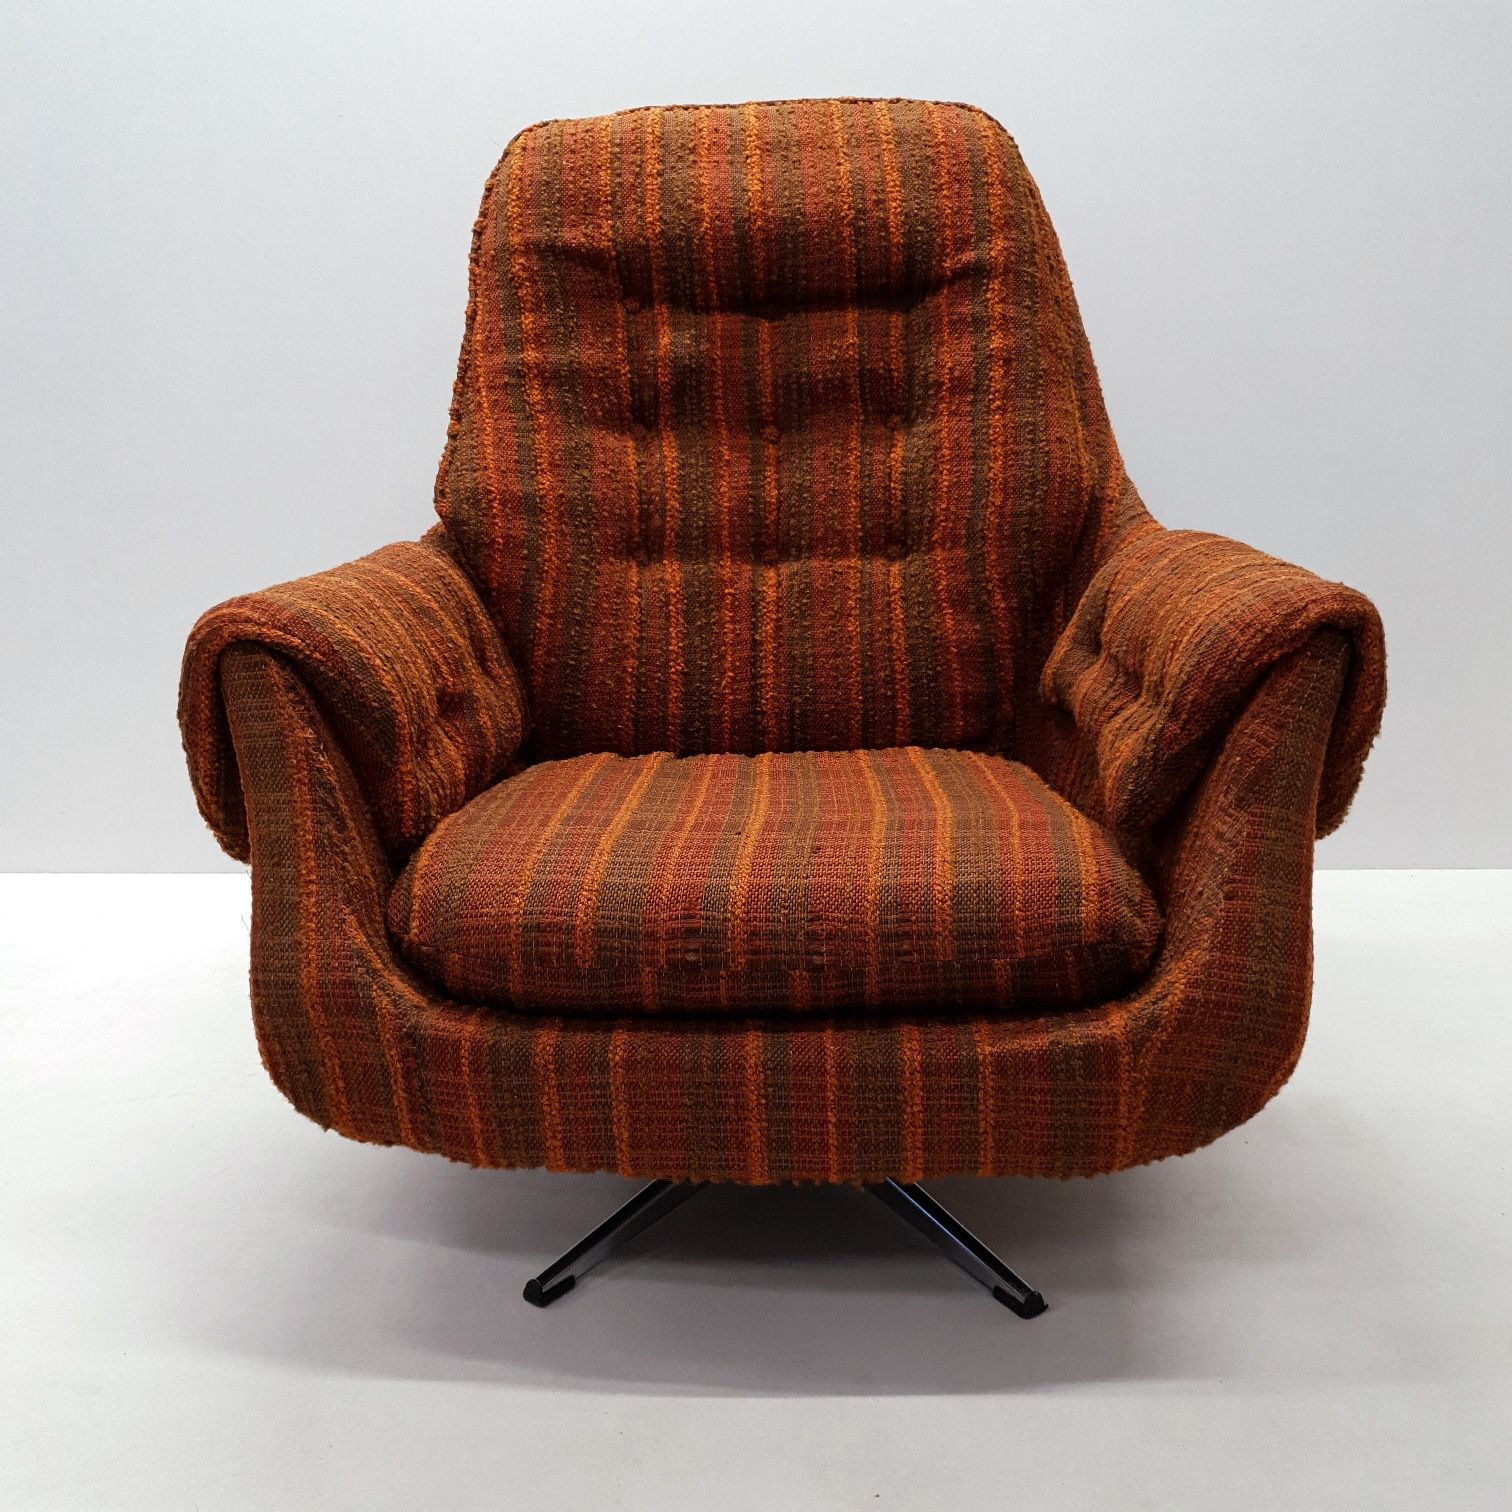 Vintage Lounge Chair Retro Swivel Egg, 1970S – Design Market With Retro Sofas And Chairs (View 6 of 15)